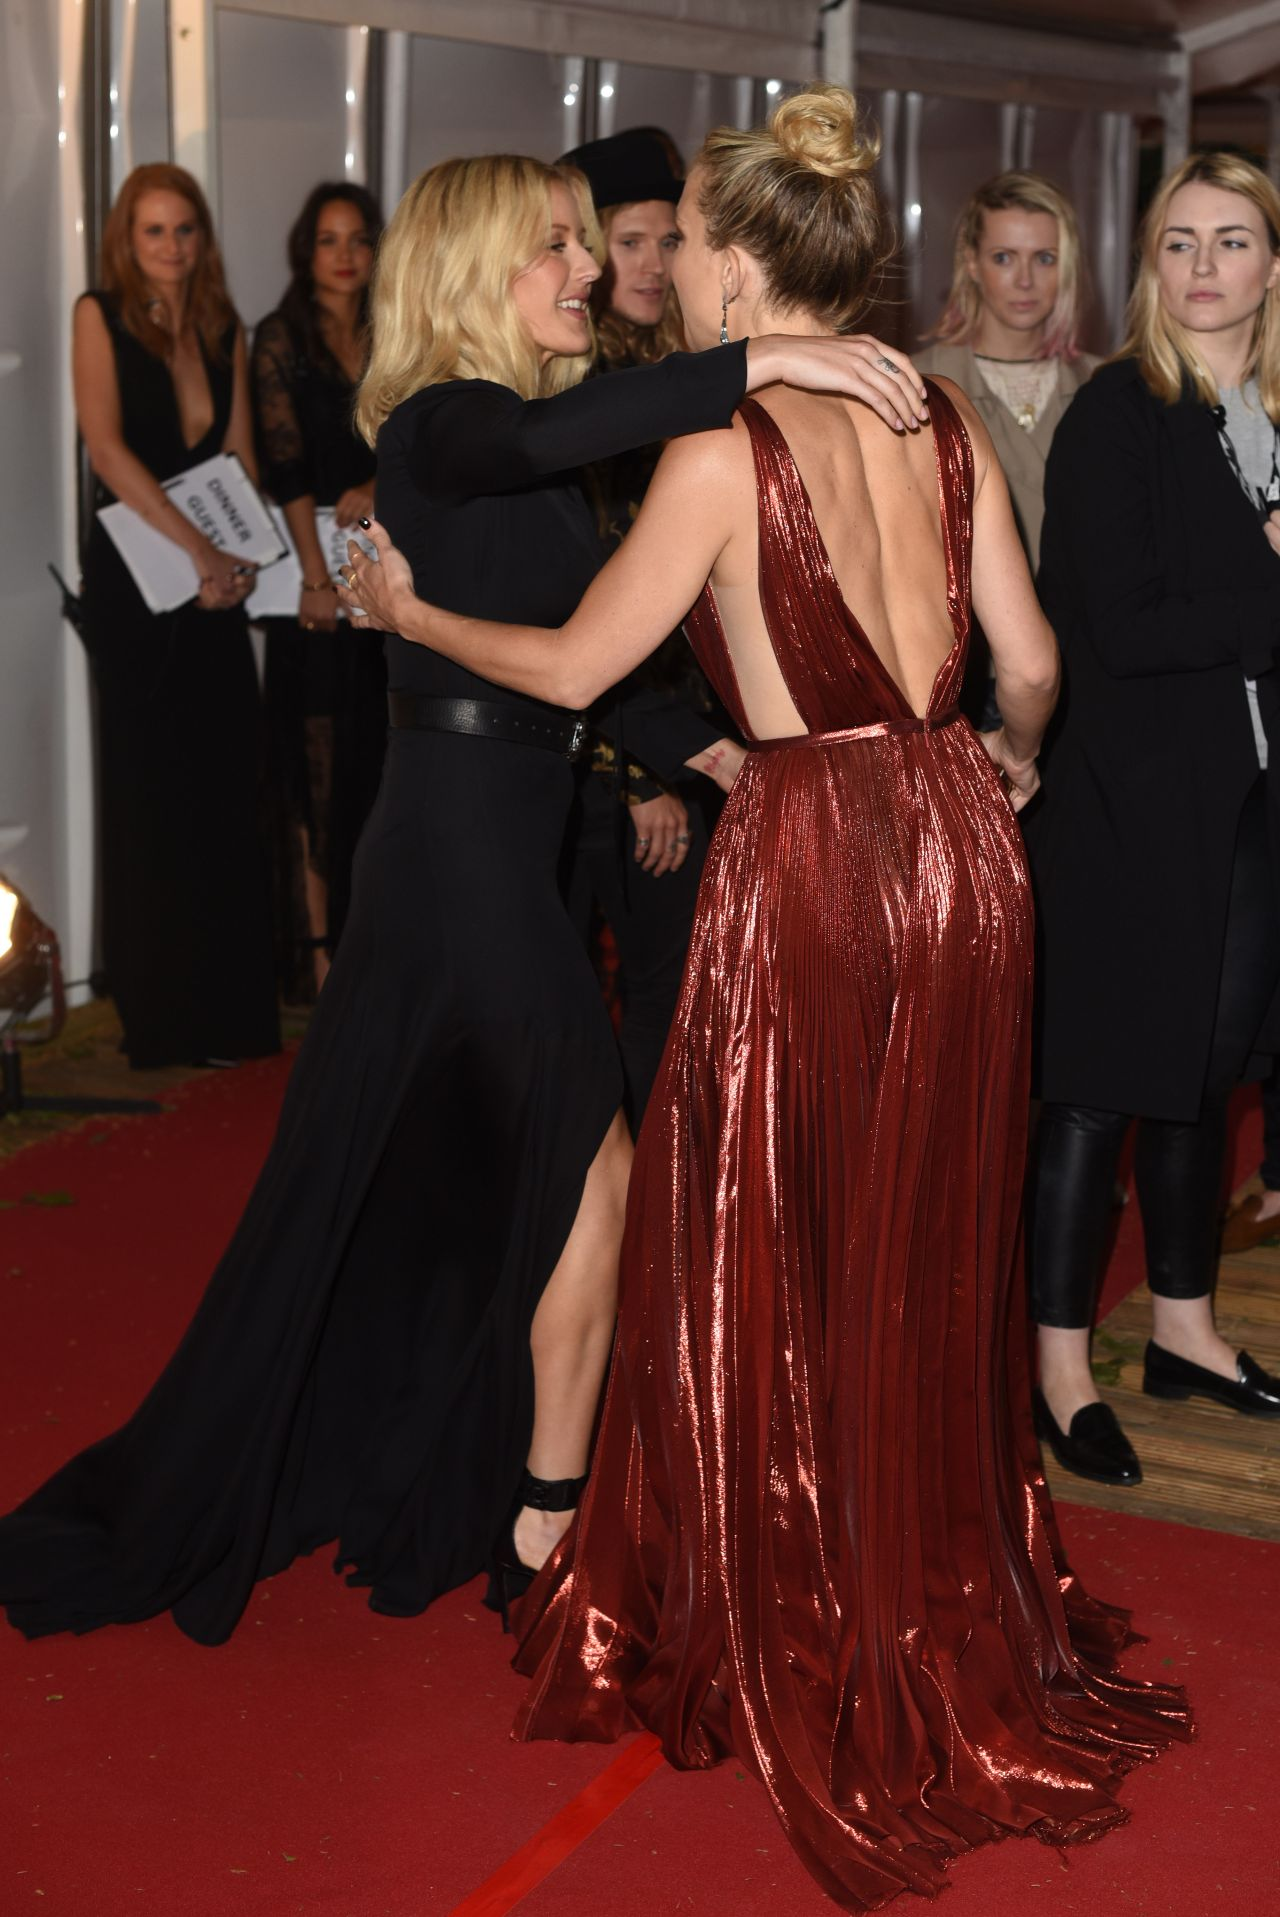 kate-hudson-2015-glamour-women-of-the-year-awards-in-london_13